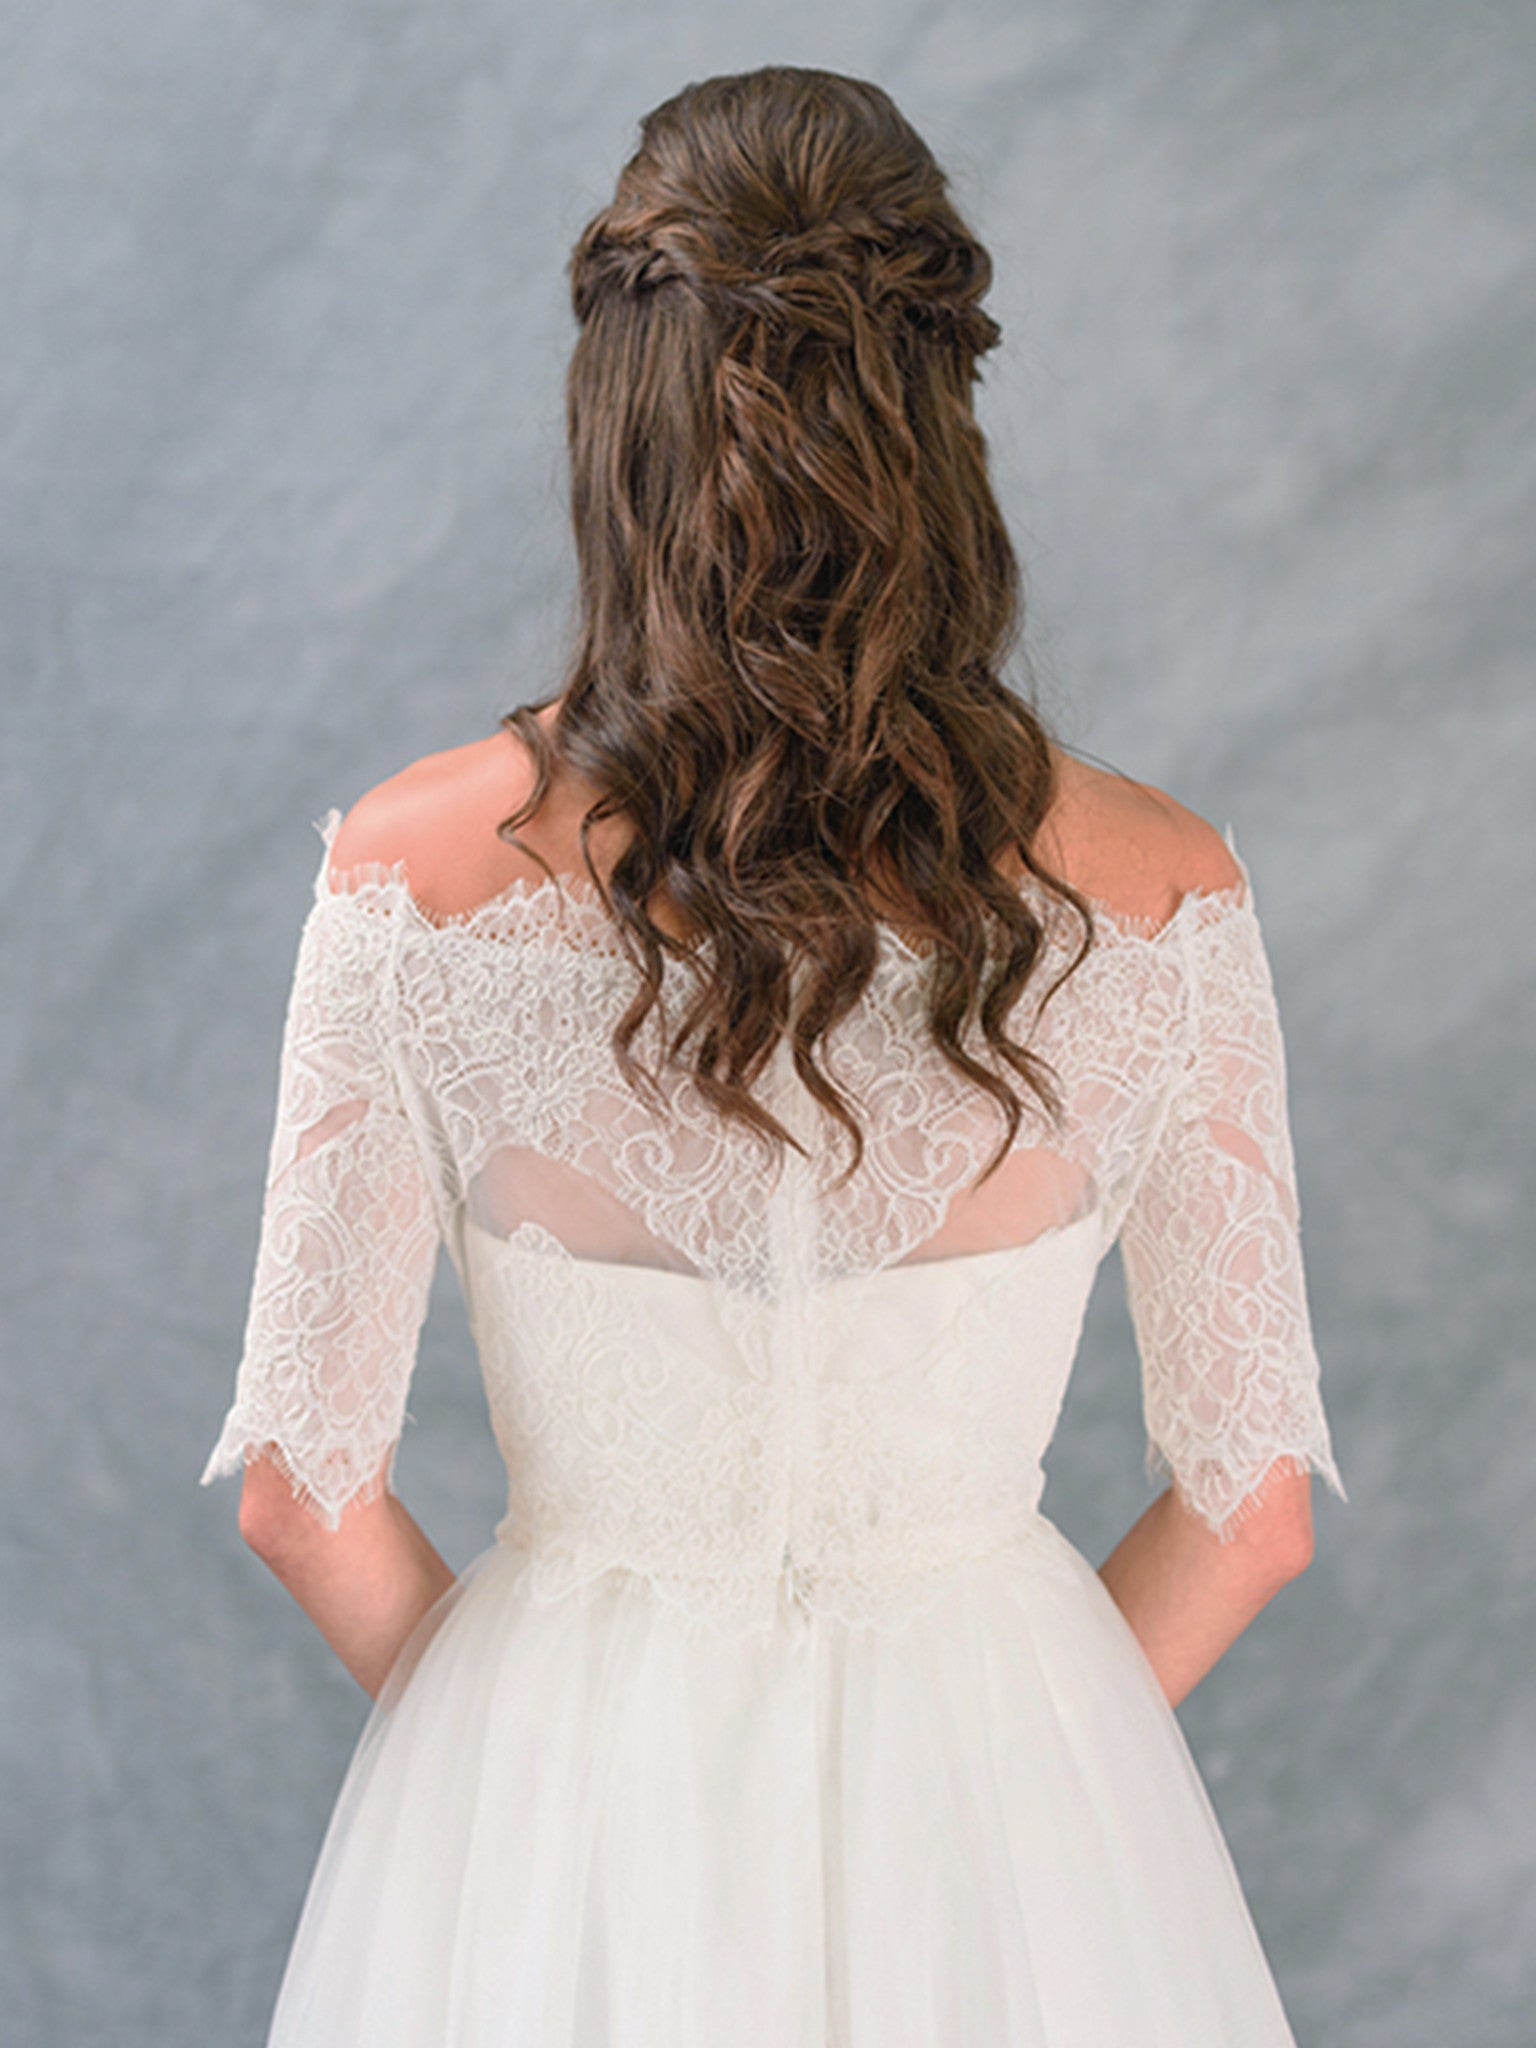 Off Shoulder Lace Half Sleeve Topper - Lace & Liberty